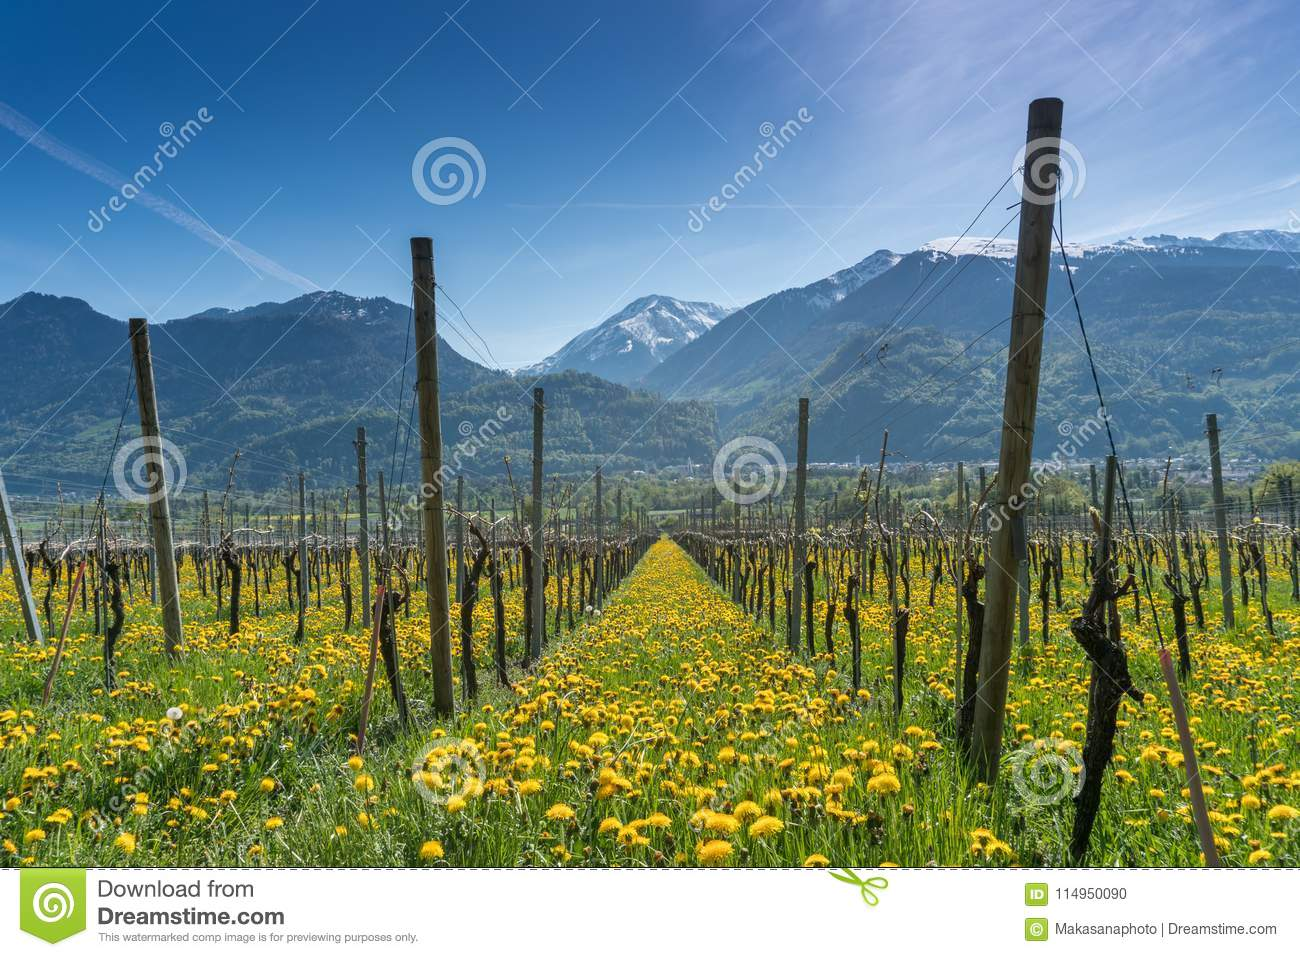 Wonderful view of vineyards in spring with yellow flowers and endless rows of vines